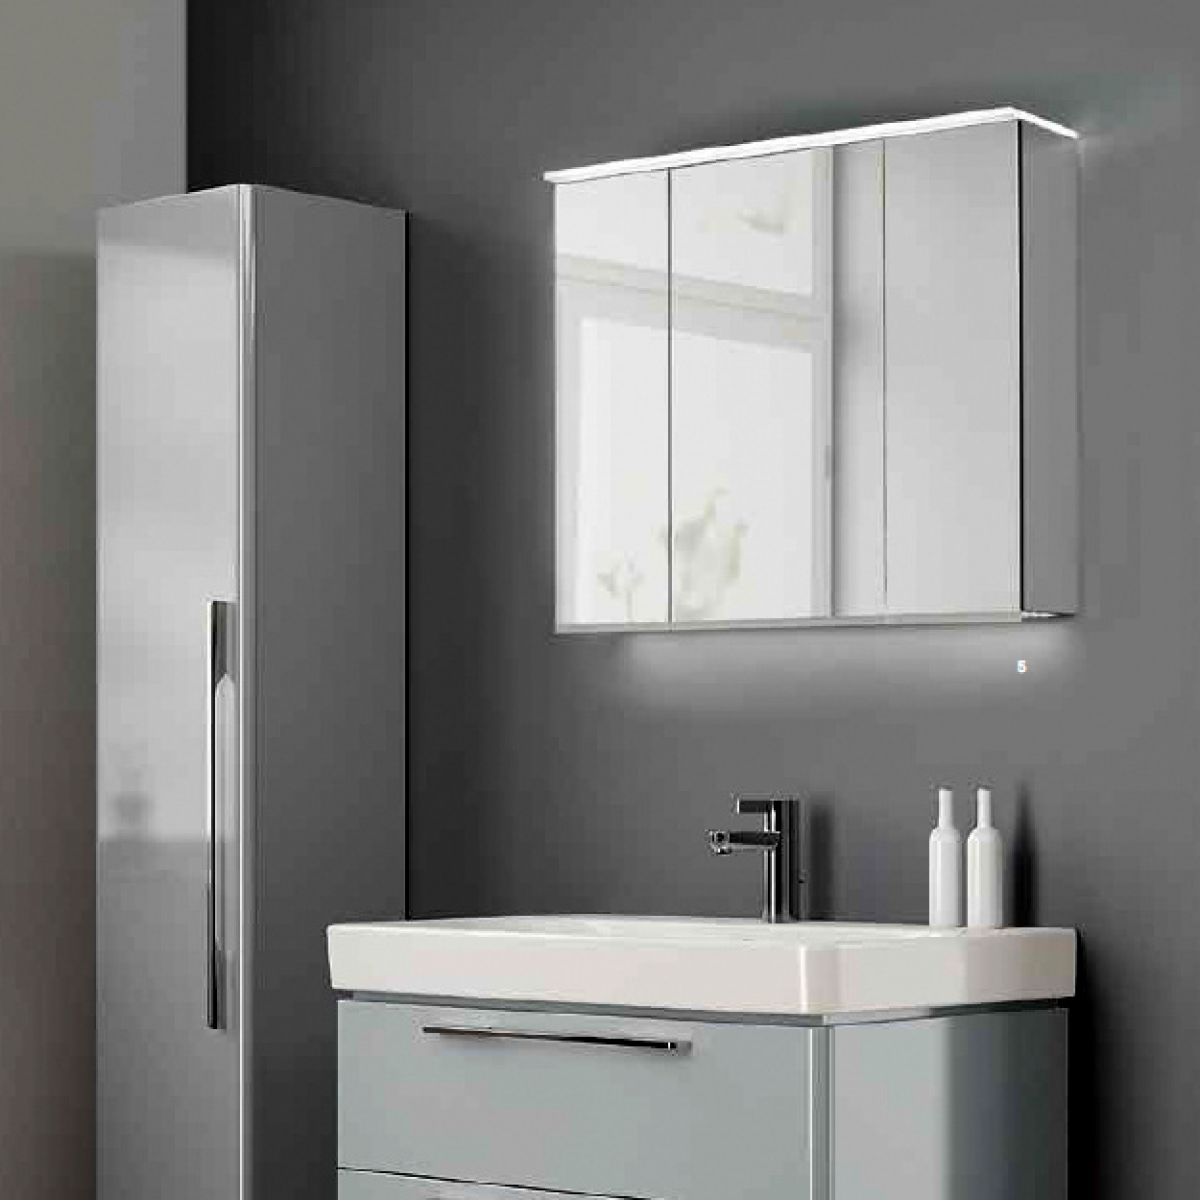 Geberit option plus mirror cabinet uk bathrooms for Bathroom mirror cupboard